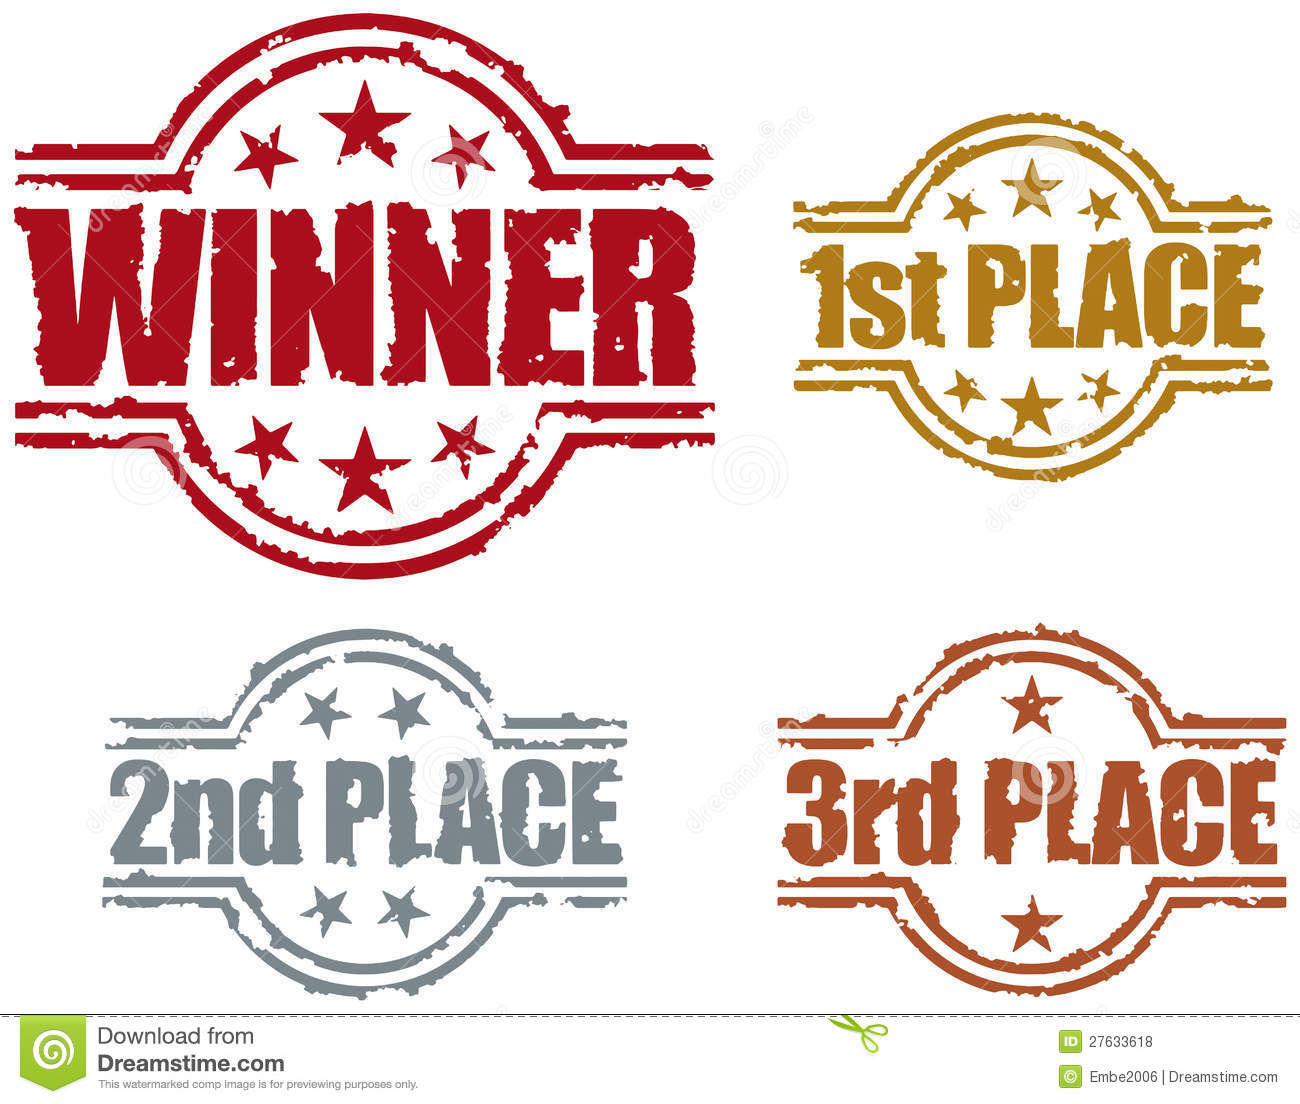 Winner Stamp Royalty Free Stock Photos - Image: 27633618